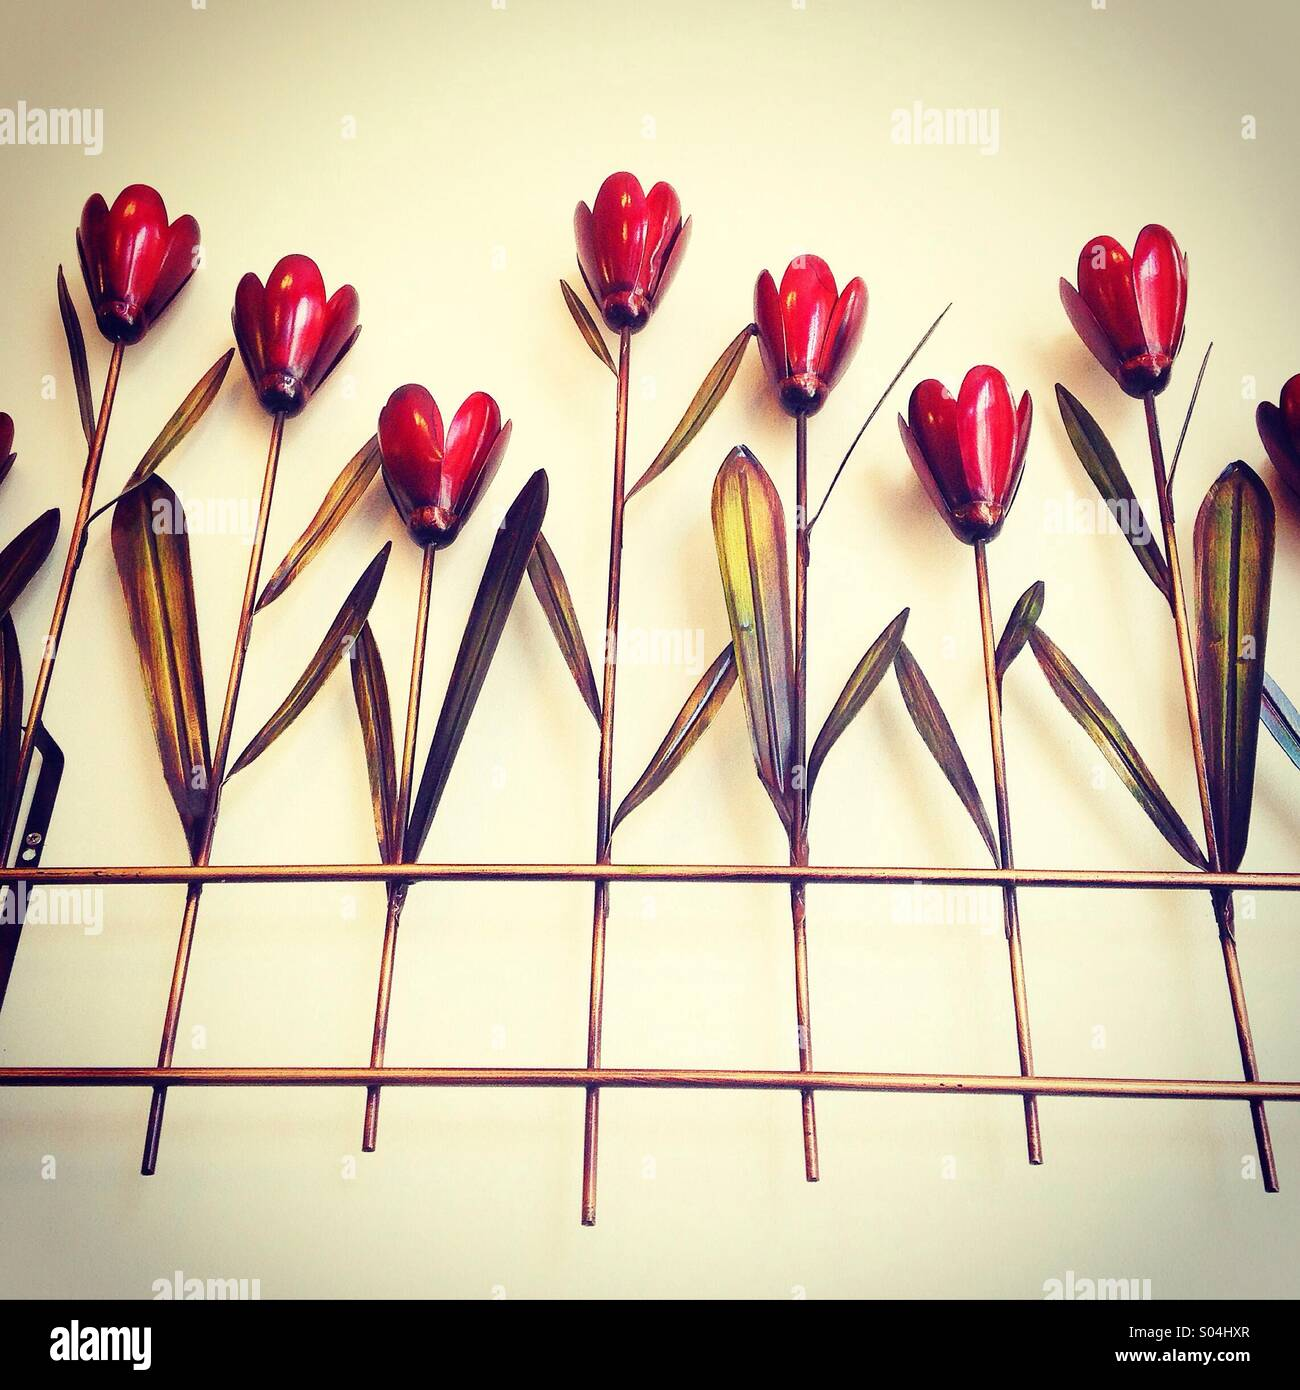 A metal wall hanging in a tulip design - Stock Image